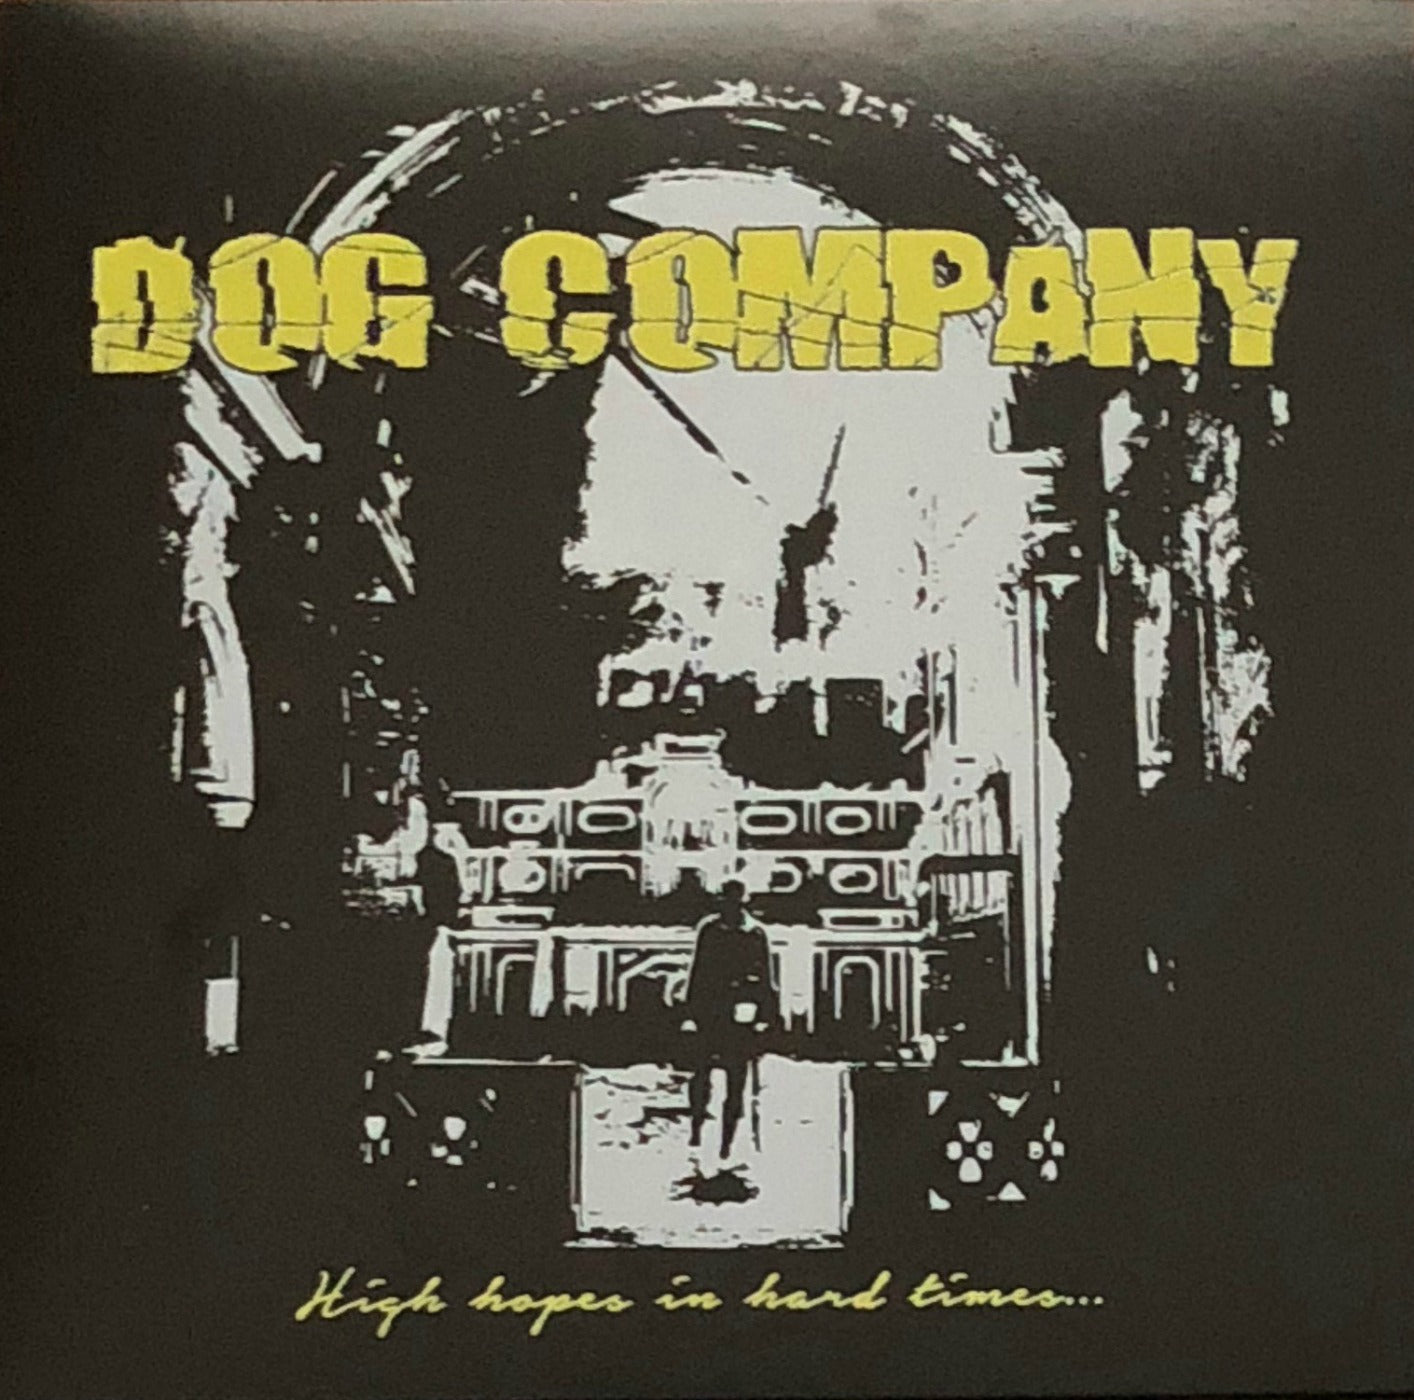 Dog Company - High Hopes In Hard Times LIMITED #'d SILK SCREEN EDITION CCM LP